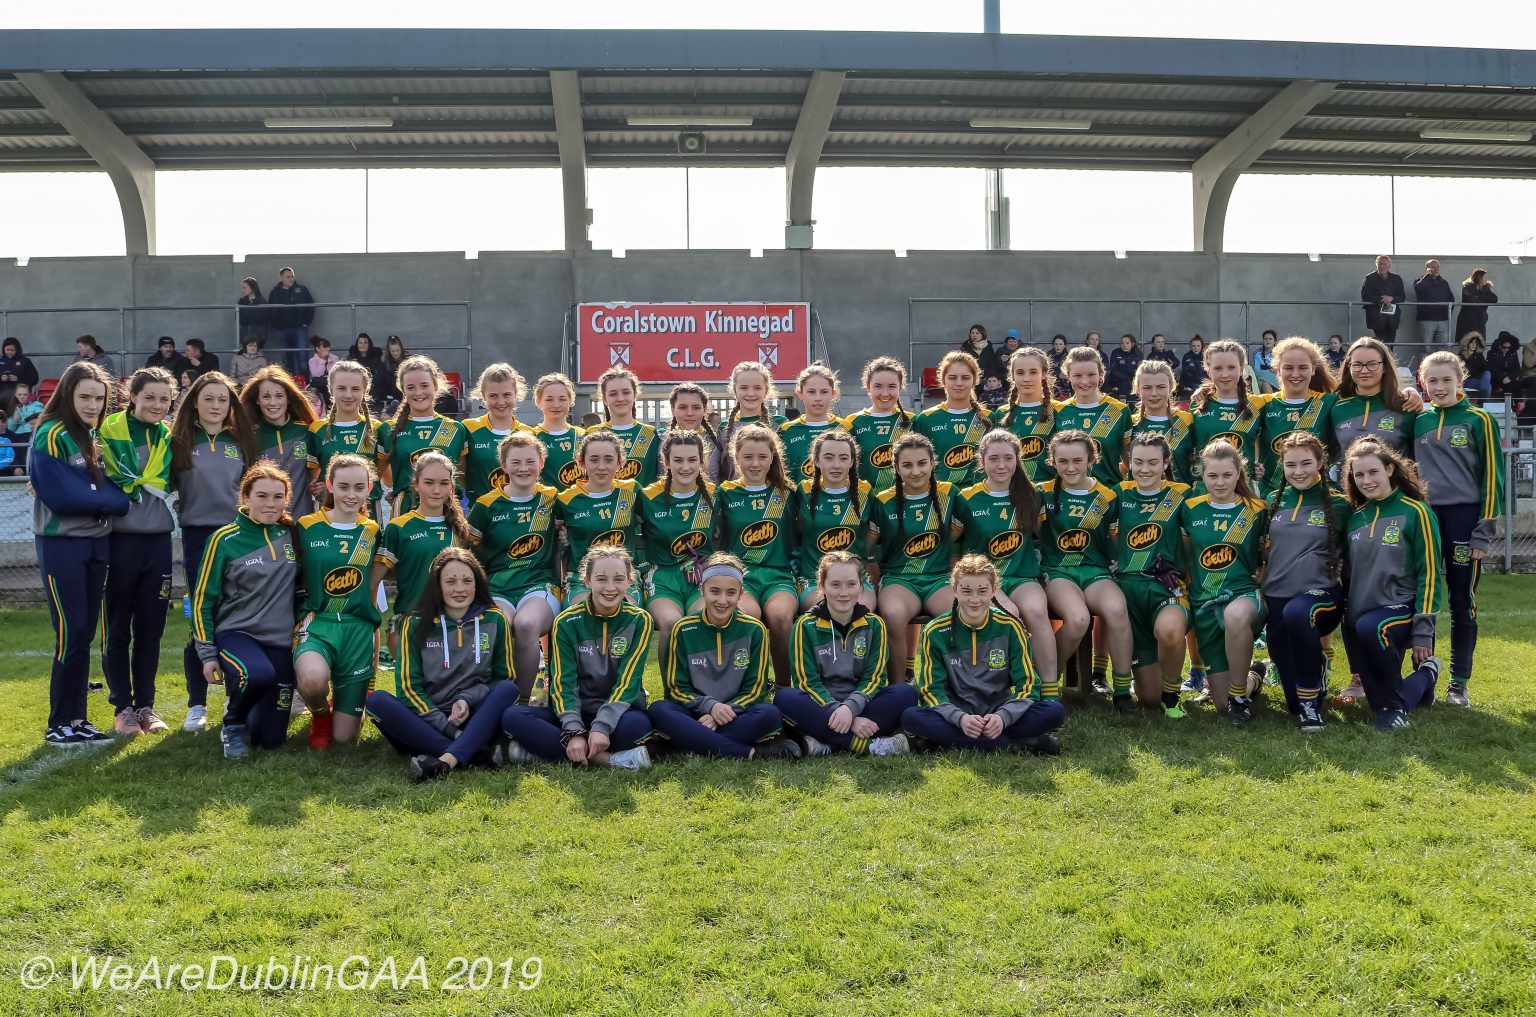 Meath Ladies Football Squad In green jerseys with yellow stripes across the front pictured before the U16 Leinster Ladies Football final